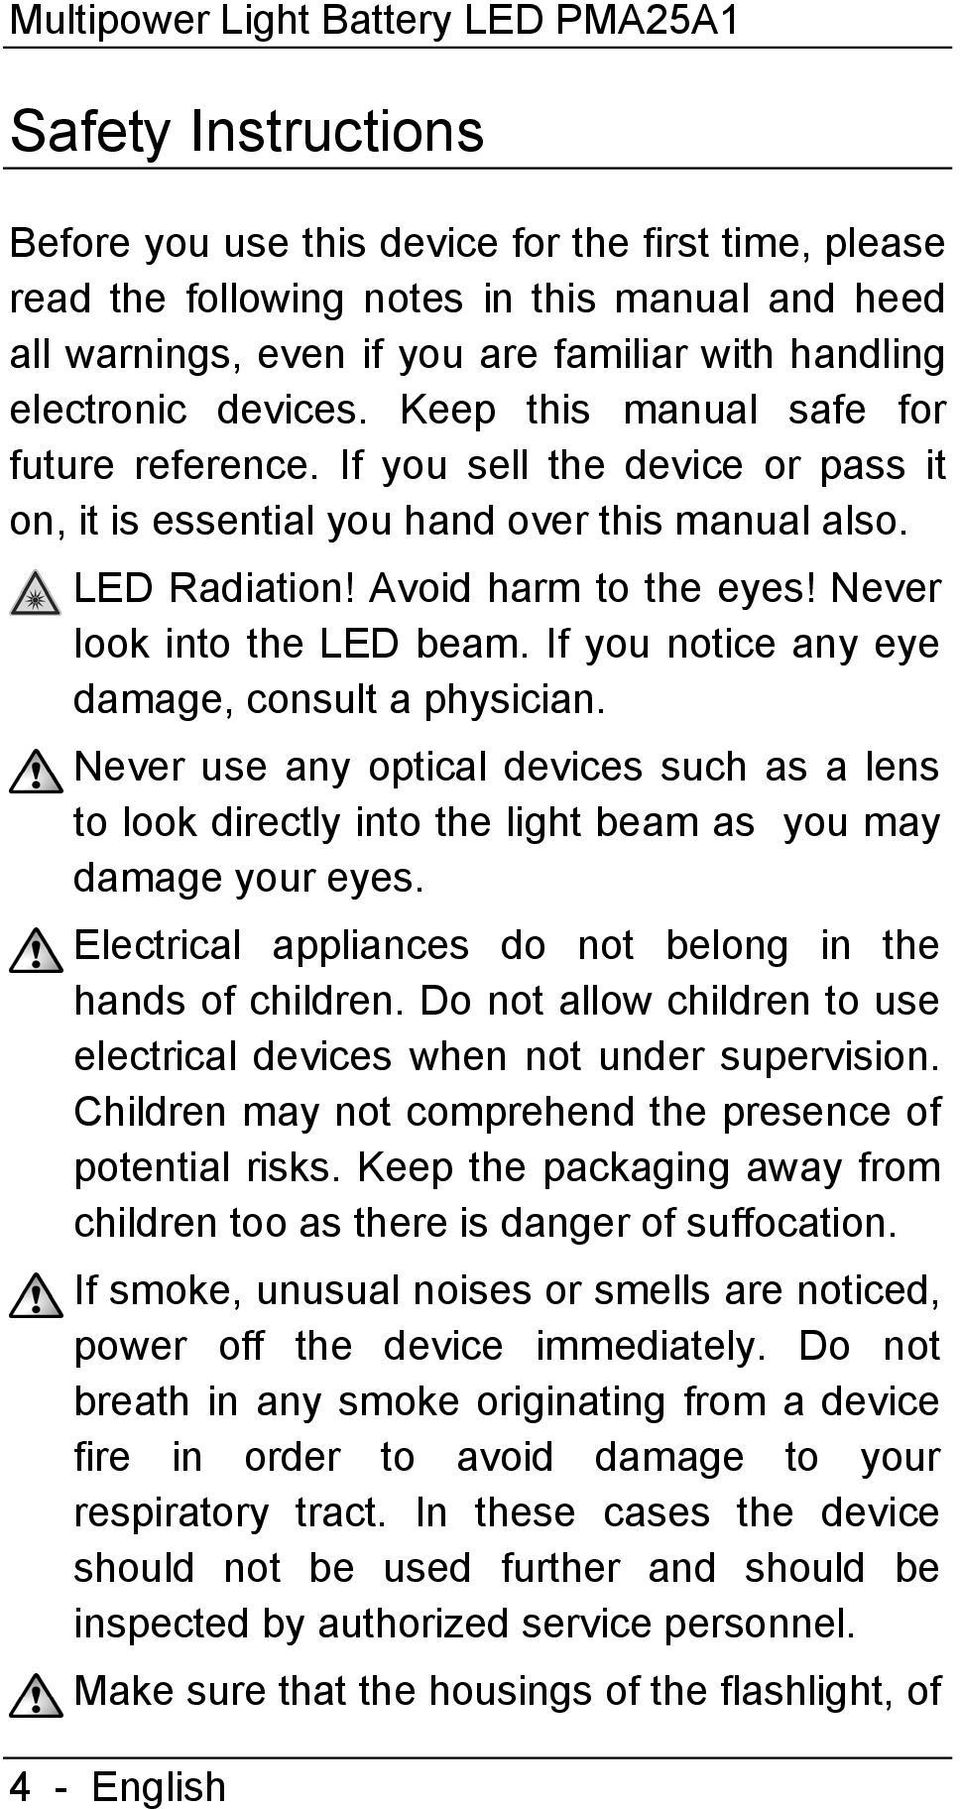 Avoid harm to the eyes! Never look into the LED beam. If you notice any eye damage, consult a physician.